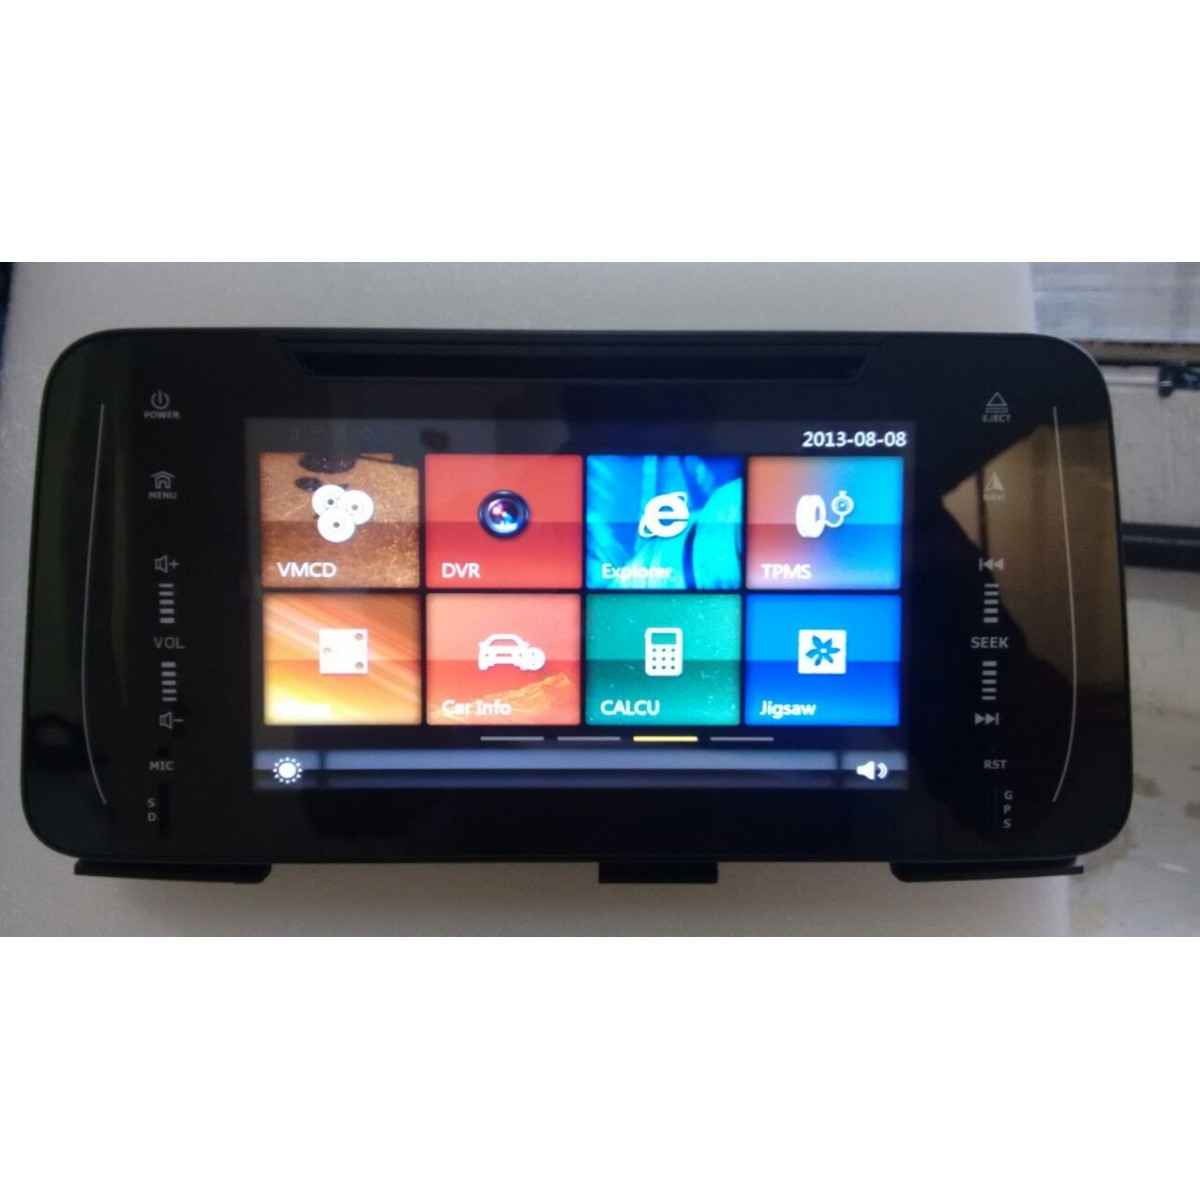 "Central Multimidia Nissan Kicks 2017 2018 - TELA 8 ""  Camera de ré Espelhamento DVD GPS Mapa Bluetooth MP3 USB Ipod SD Card Câmera Ré Grátis -  HETZER"